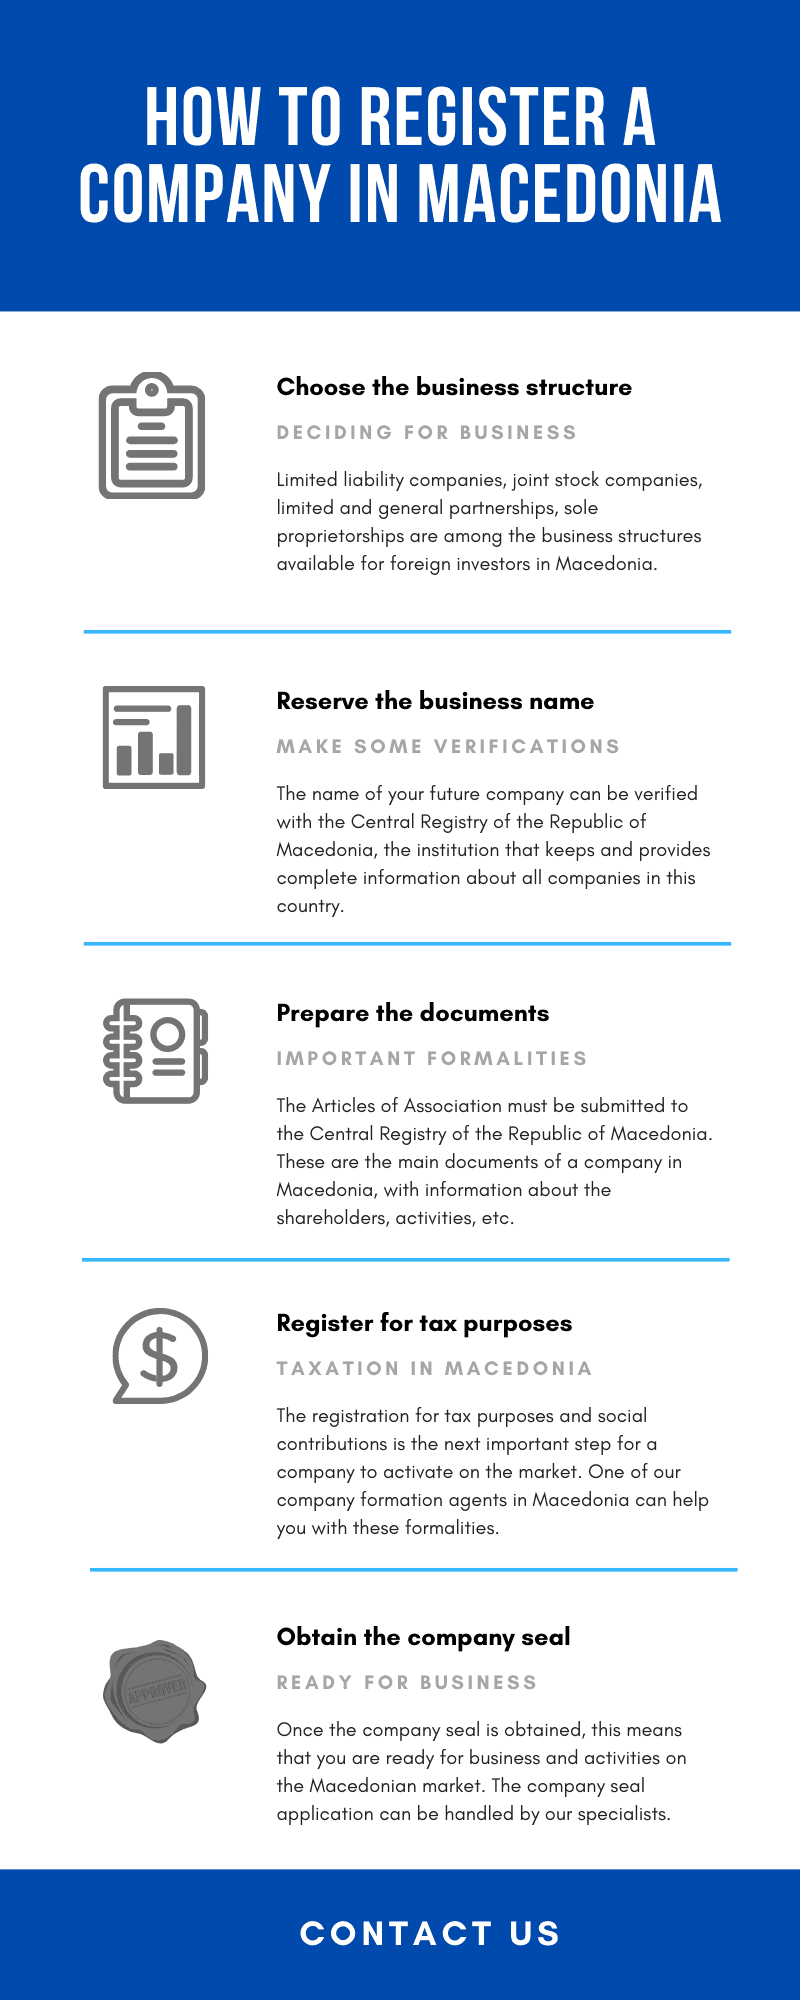 How to register a company in Macedonia1.png